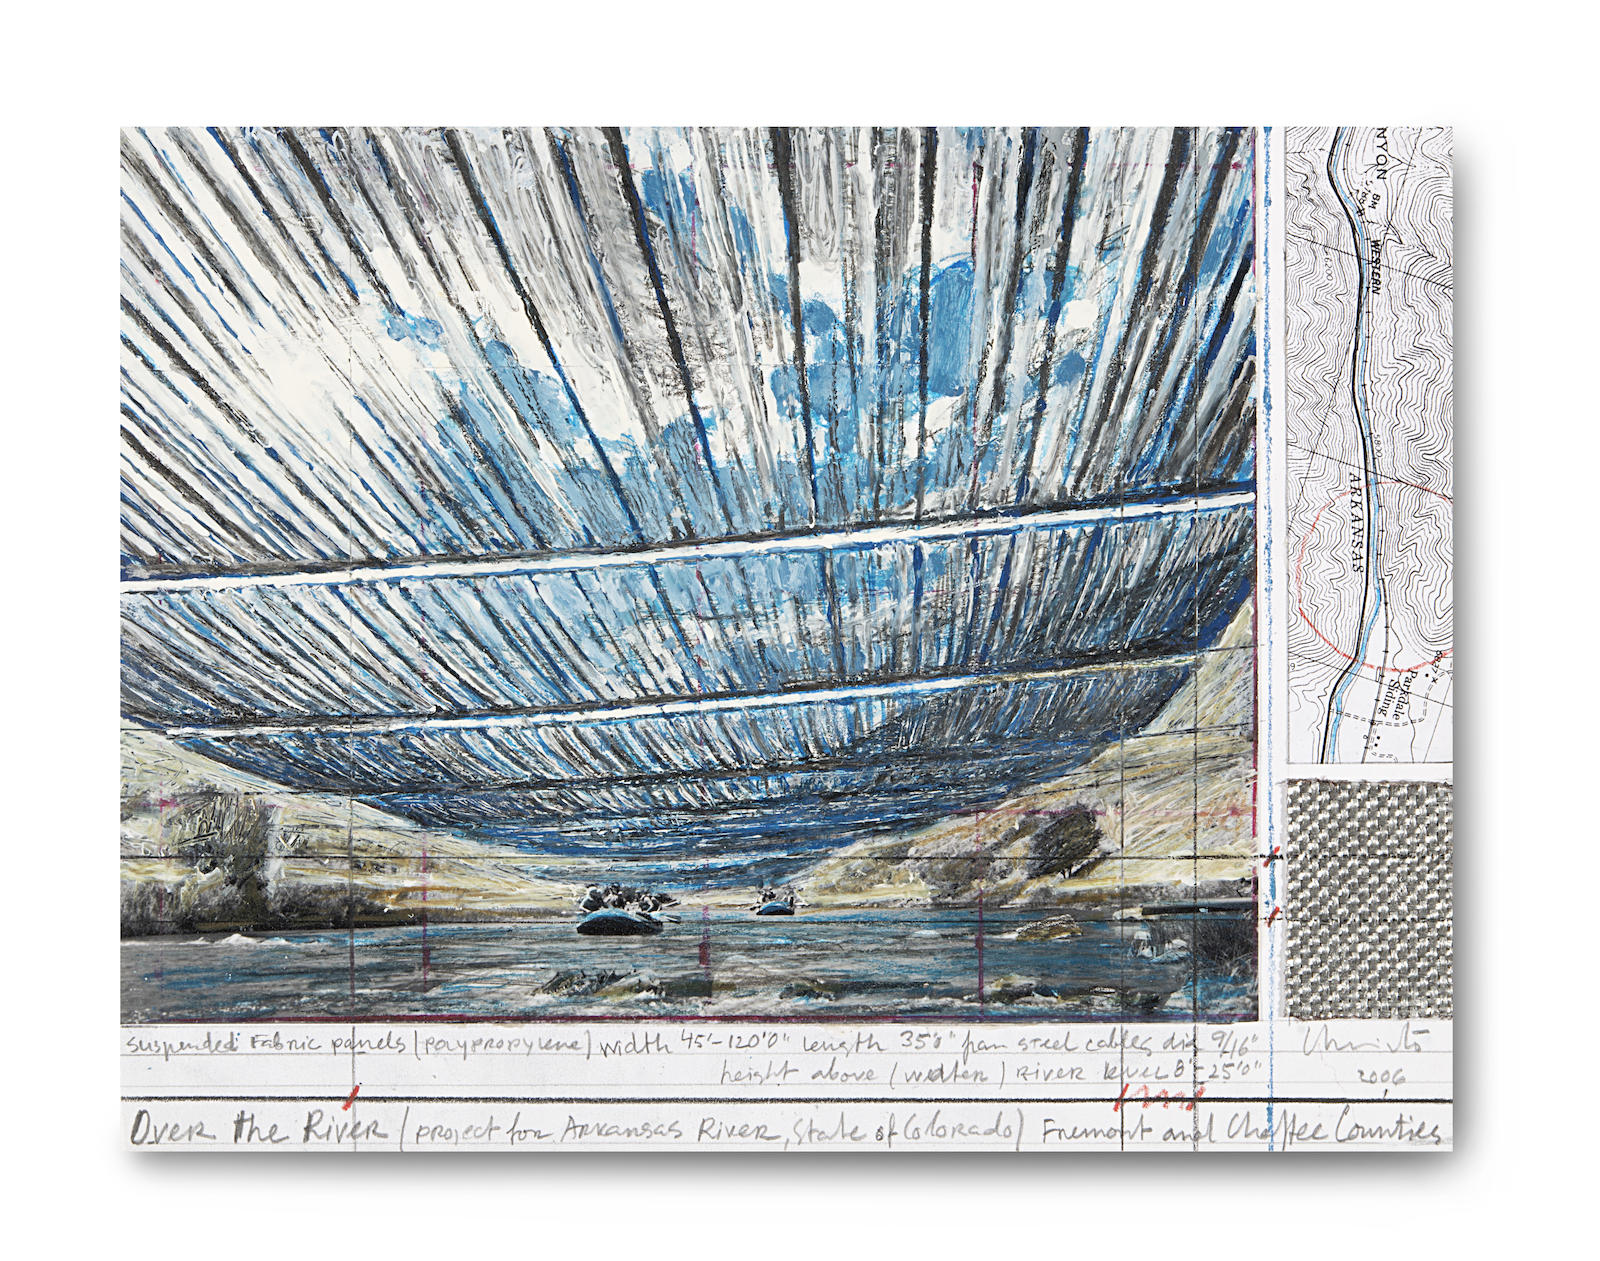 Christo and Jeanne-Claude-Over the River (project for Arkansas River State of Colorado)-2006